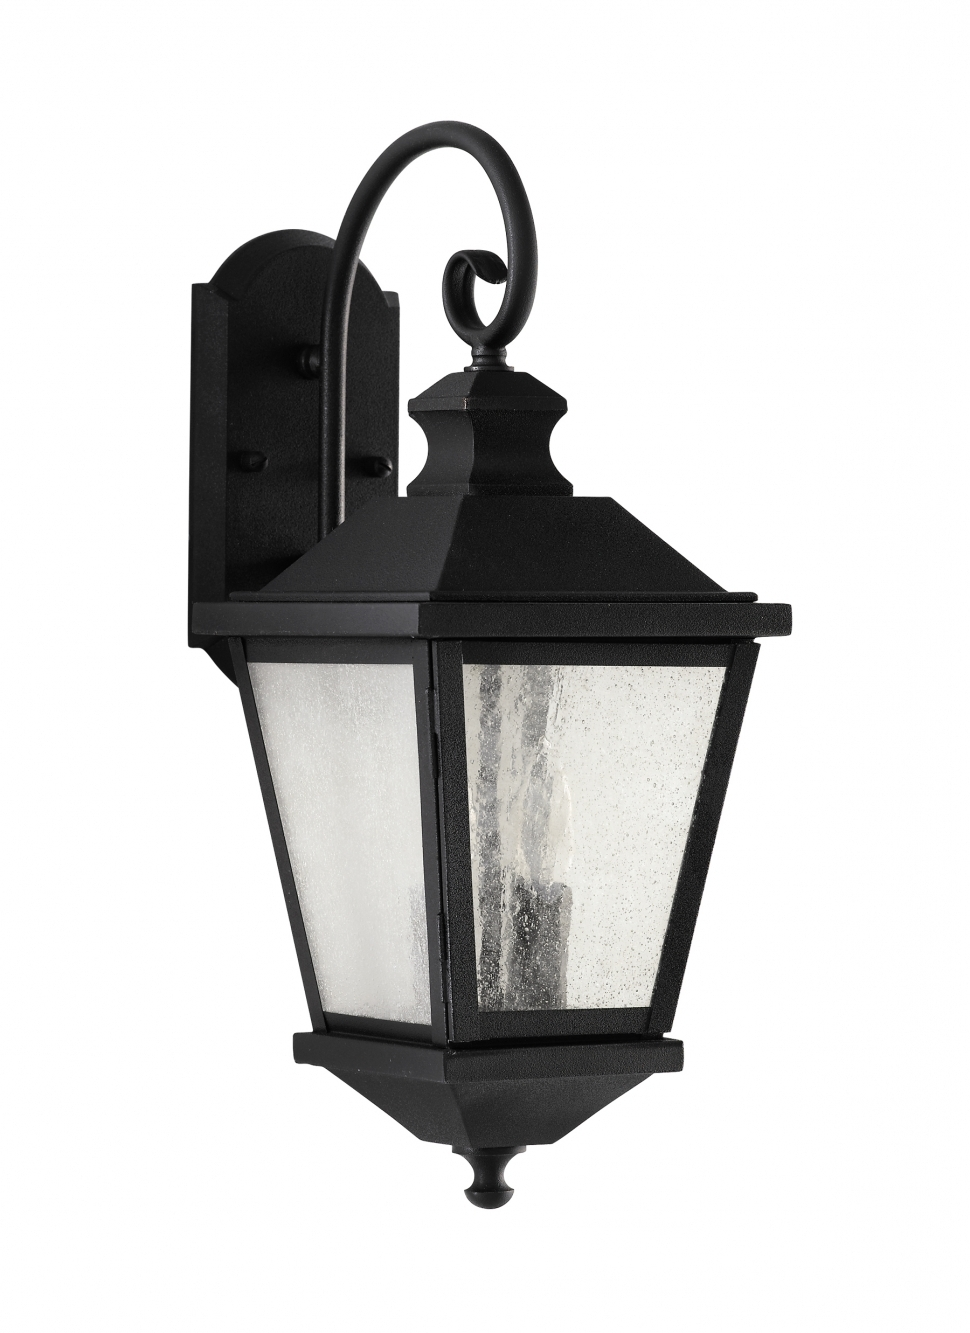 Well Known Outdoor Ceiling Light With Electrical Outlet Regarding Electrical Wiring : Awesome Outdoor Ceiling Light With Outlet And (View 2 of 20)